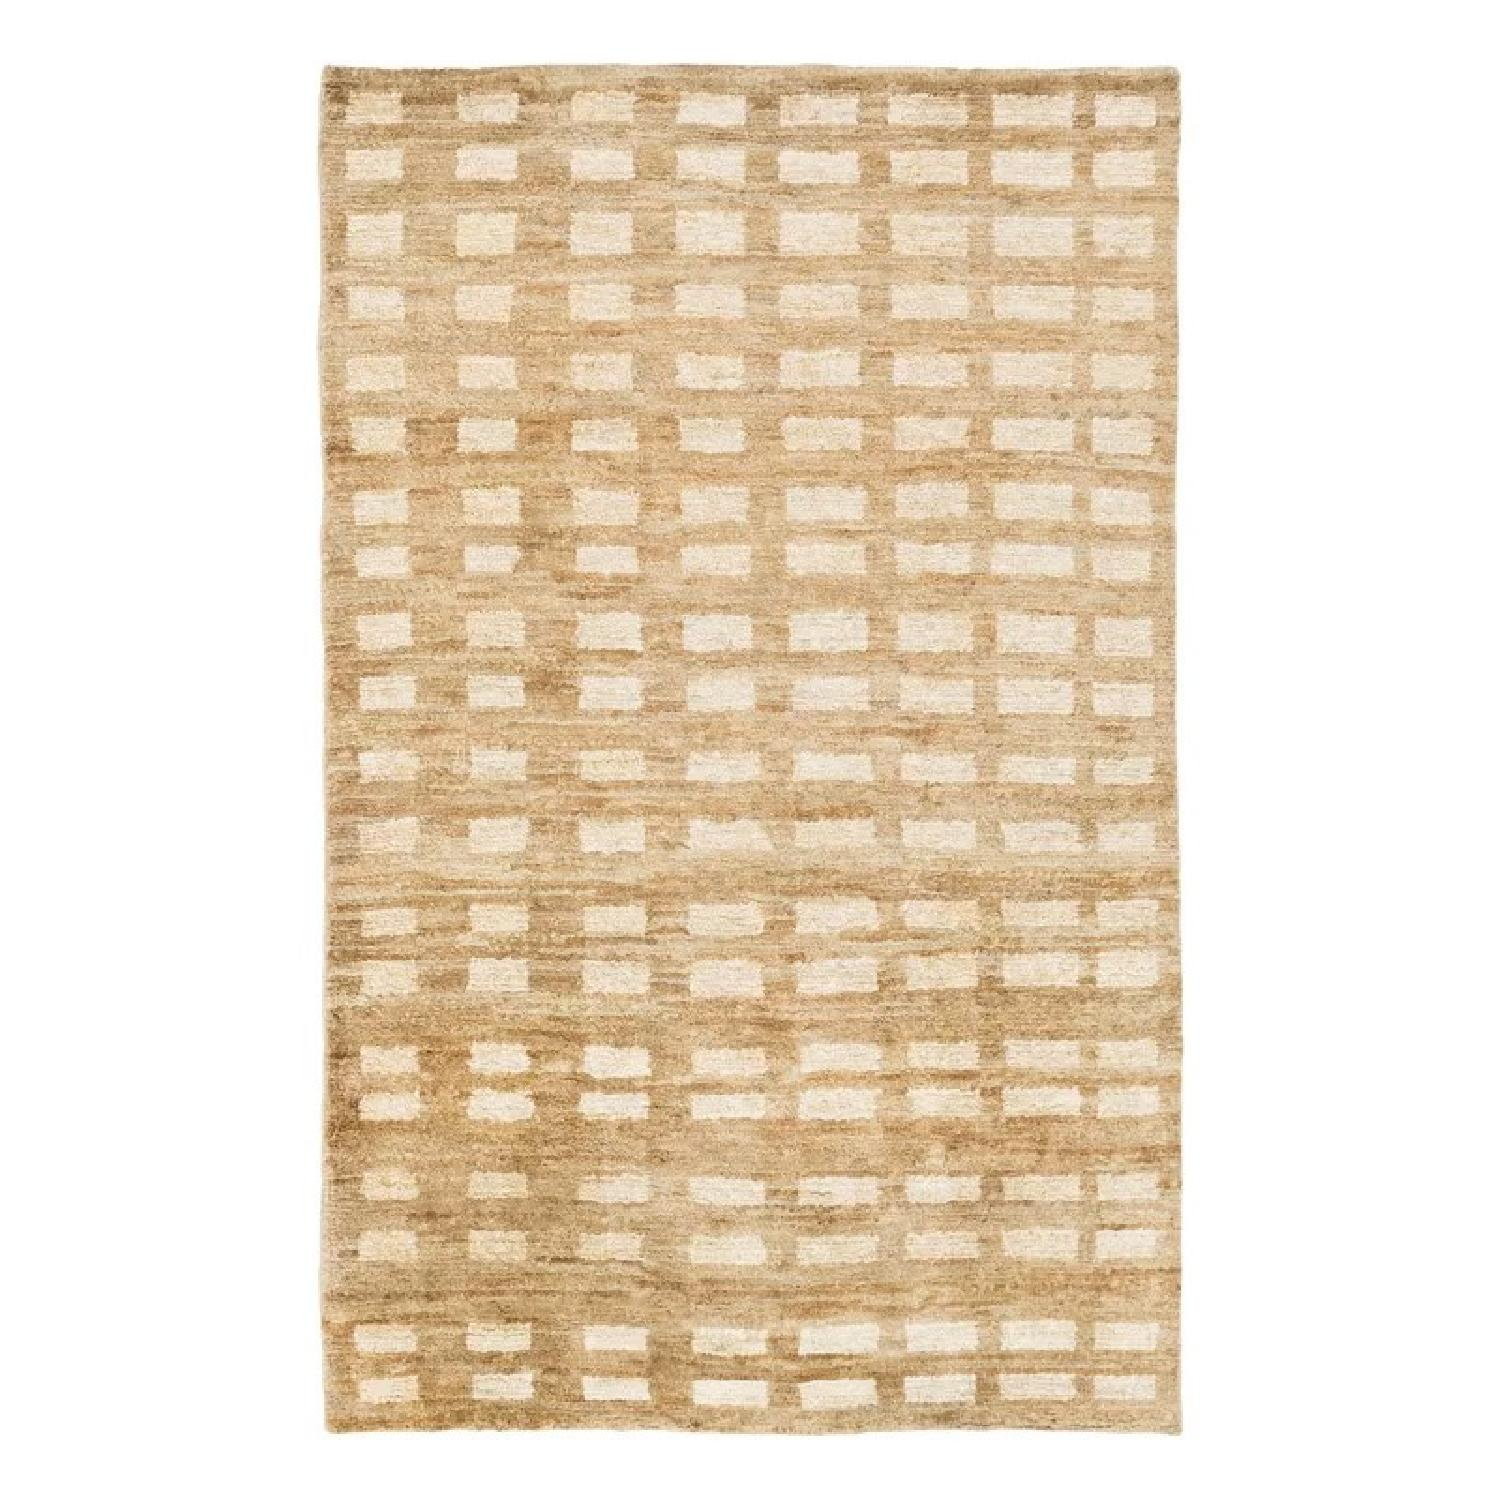 Dwell Studio Blocks Hand Knotted Jute Camel Area Rug